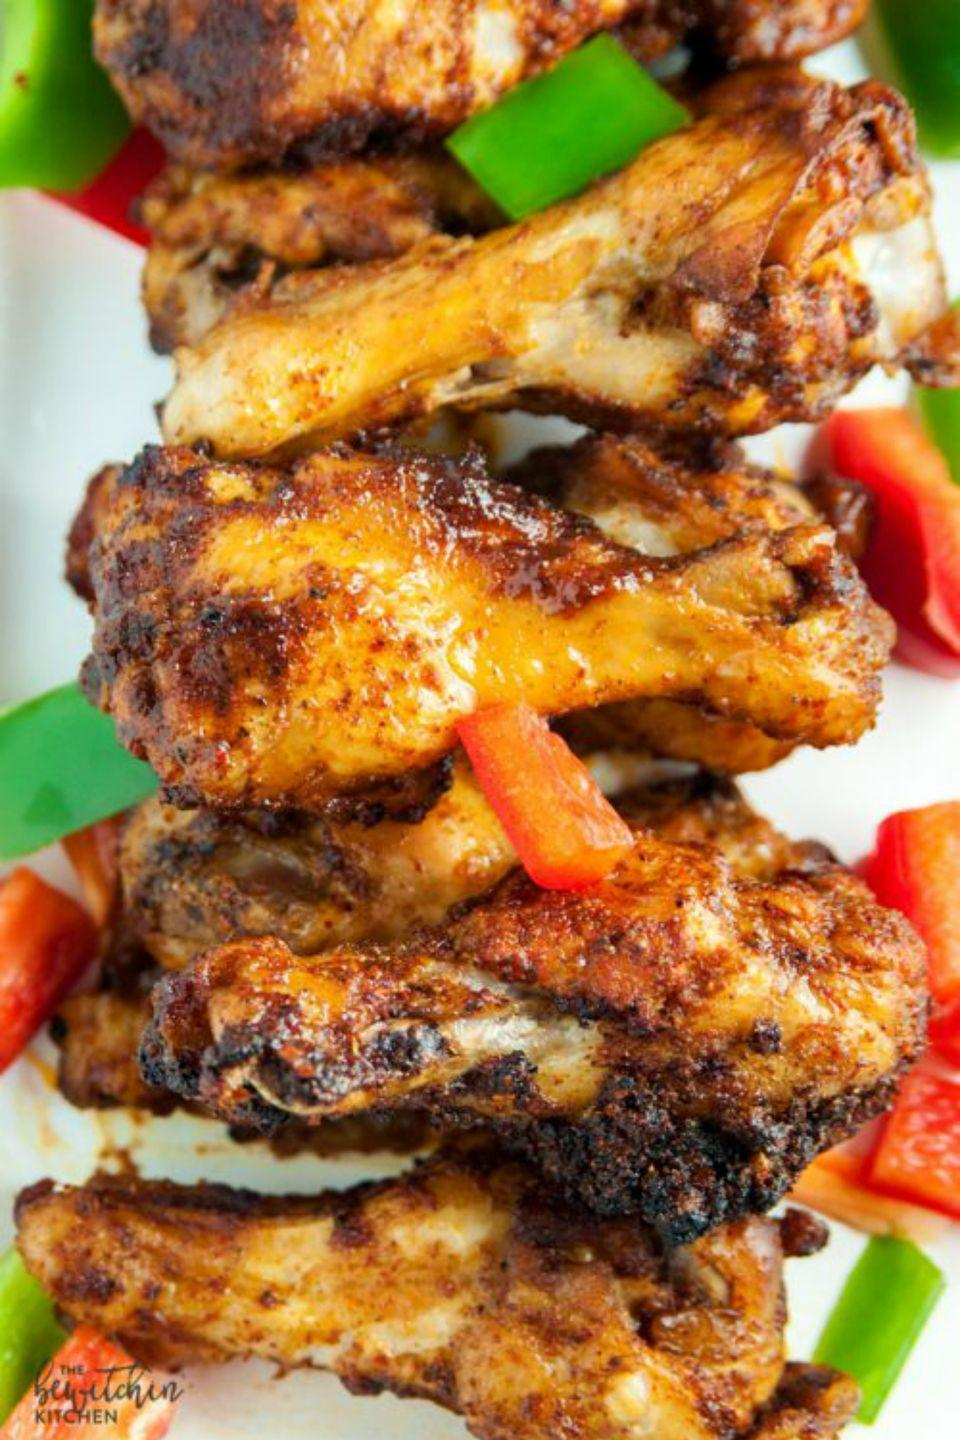 "<p>Not all snack foods have to be unhealthy and these delicious baked wings prove that. </p><p><strong>Get the recipe at <a href=""http://www.thebewitchinkitchen.com/fajita-chicken-wings/"" rel=""nofollow noopener"" target=""_blank"" data-ylk=""slk:The Bewitchin Kitchen"" class=""link rapid-noclick-resp"">The Bewitchin Kitchen</a>. </strong></p>"